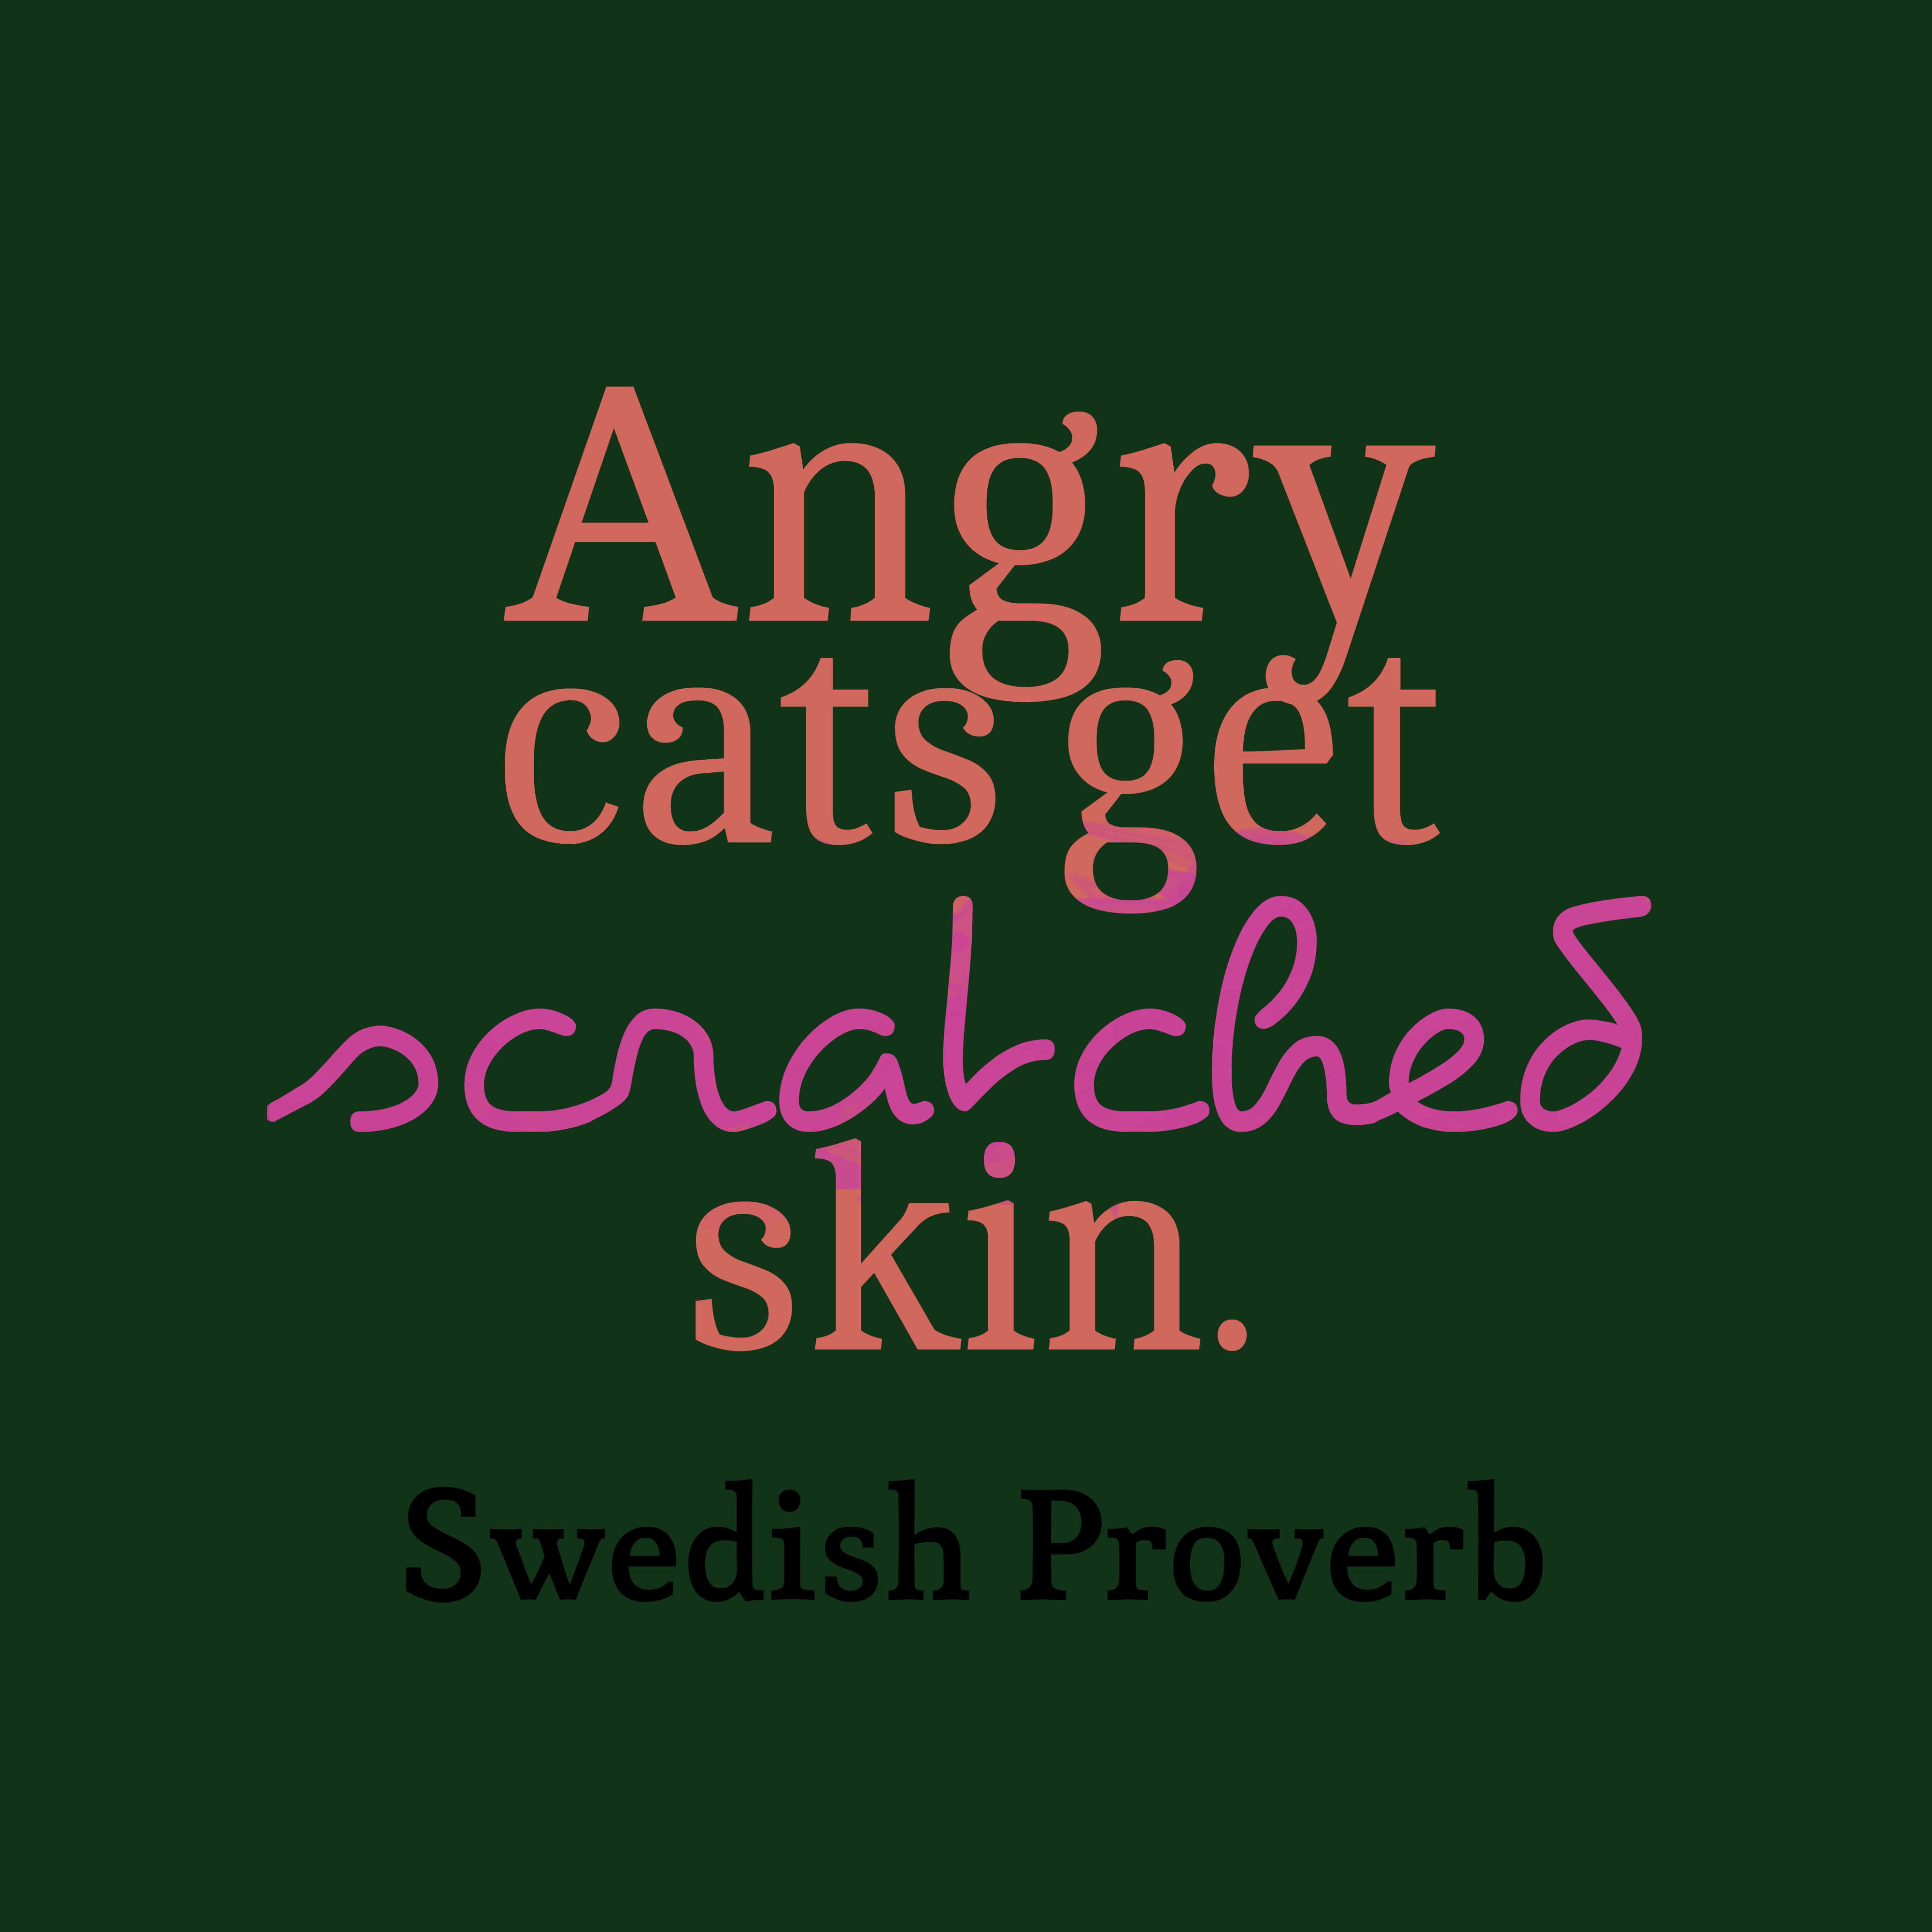 Quotes image of Angry cats get scratched skin.